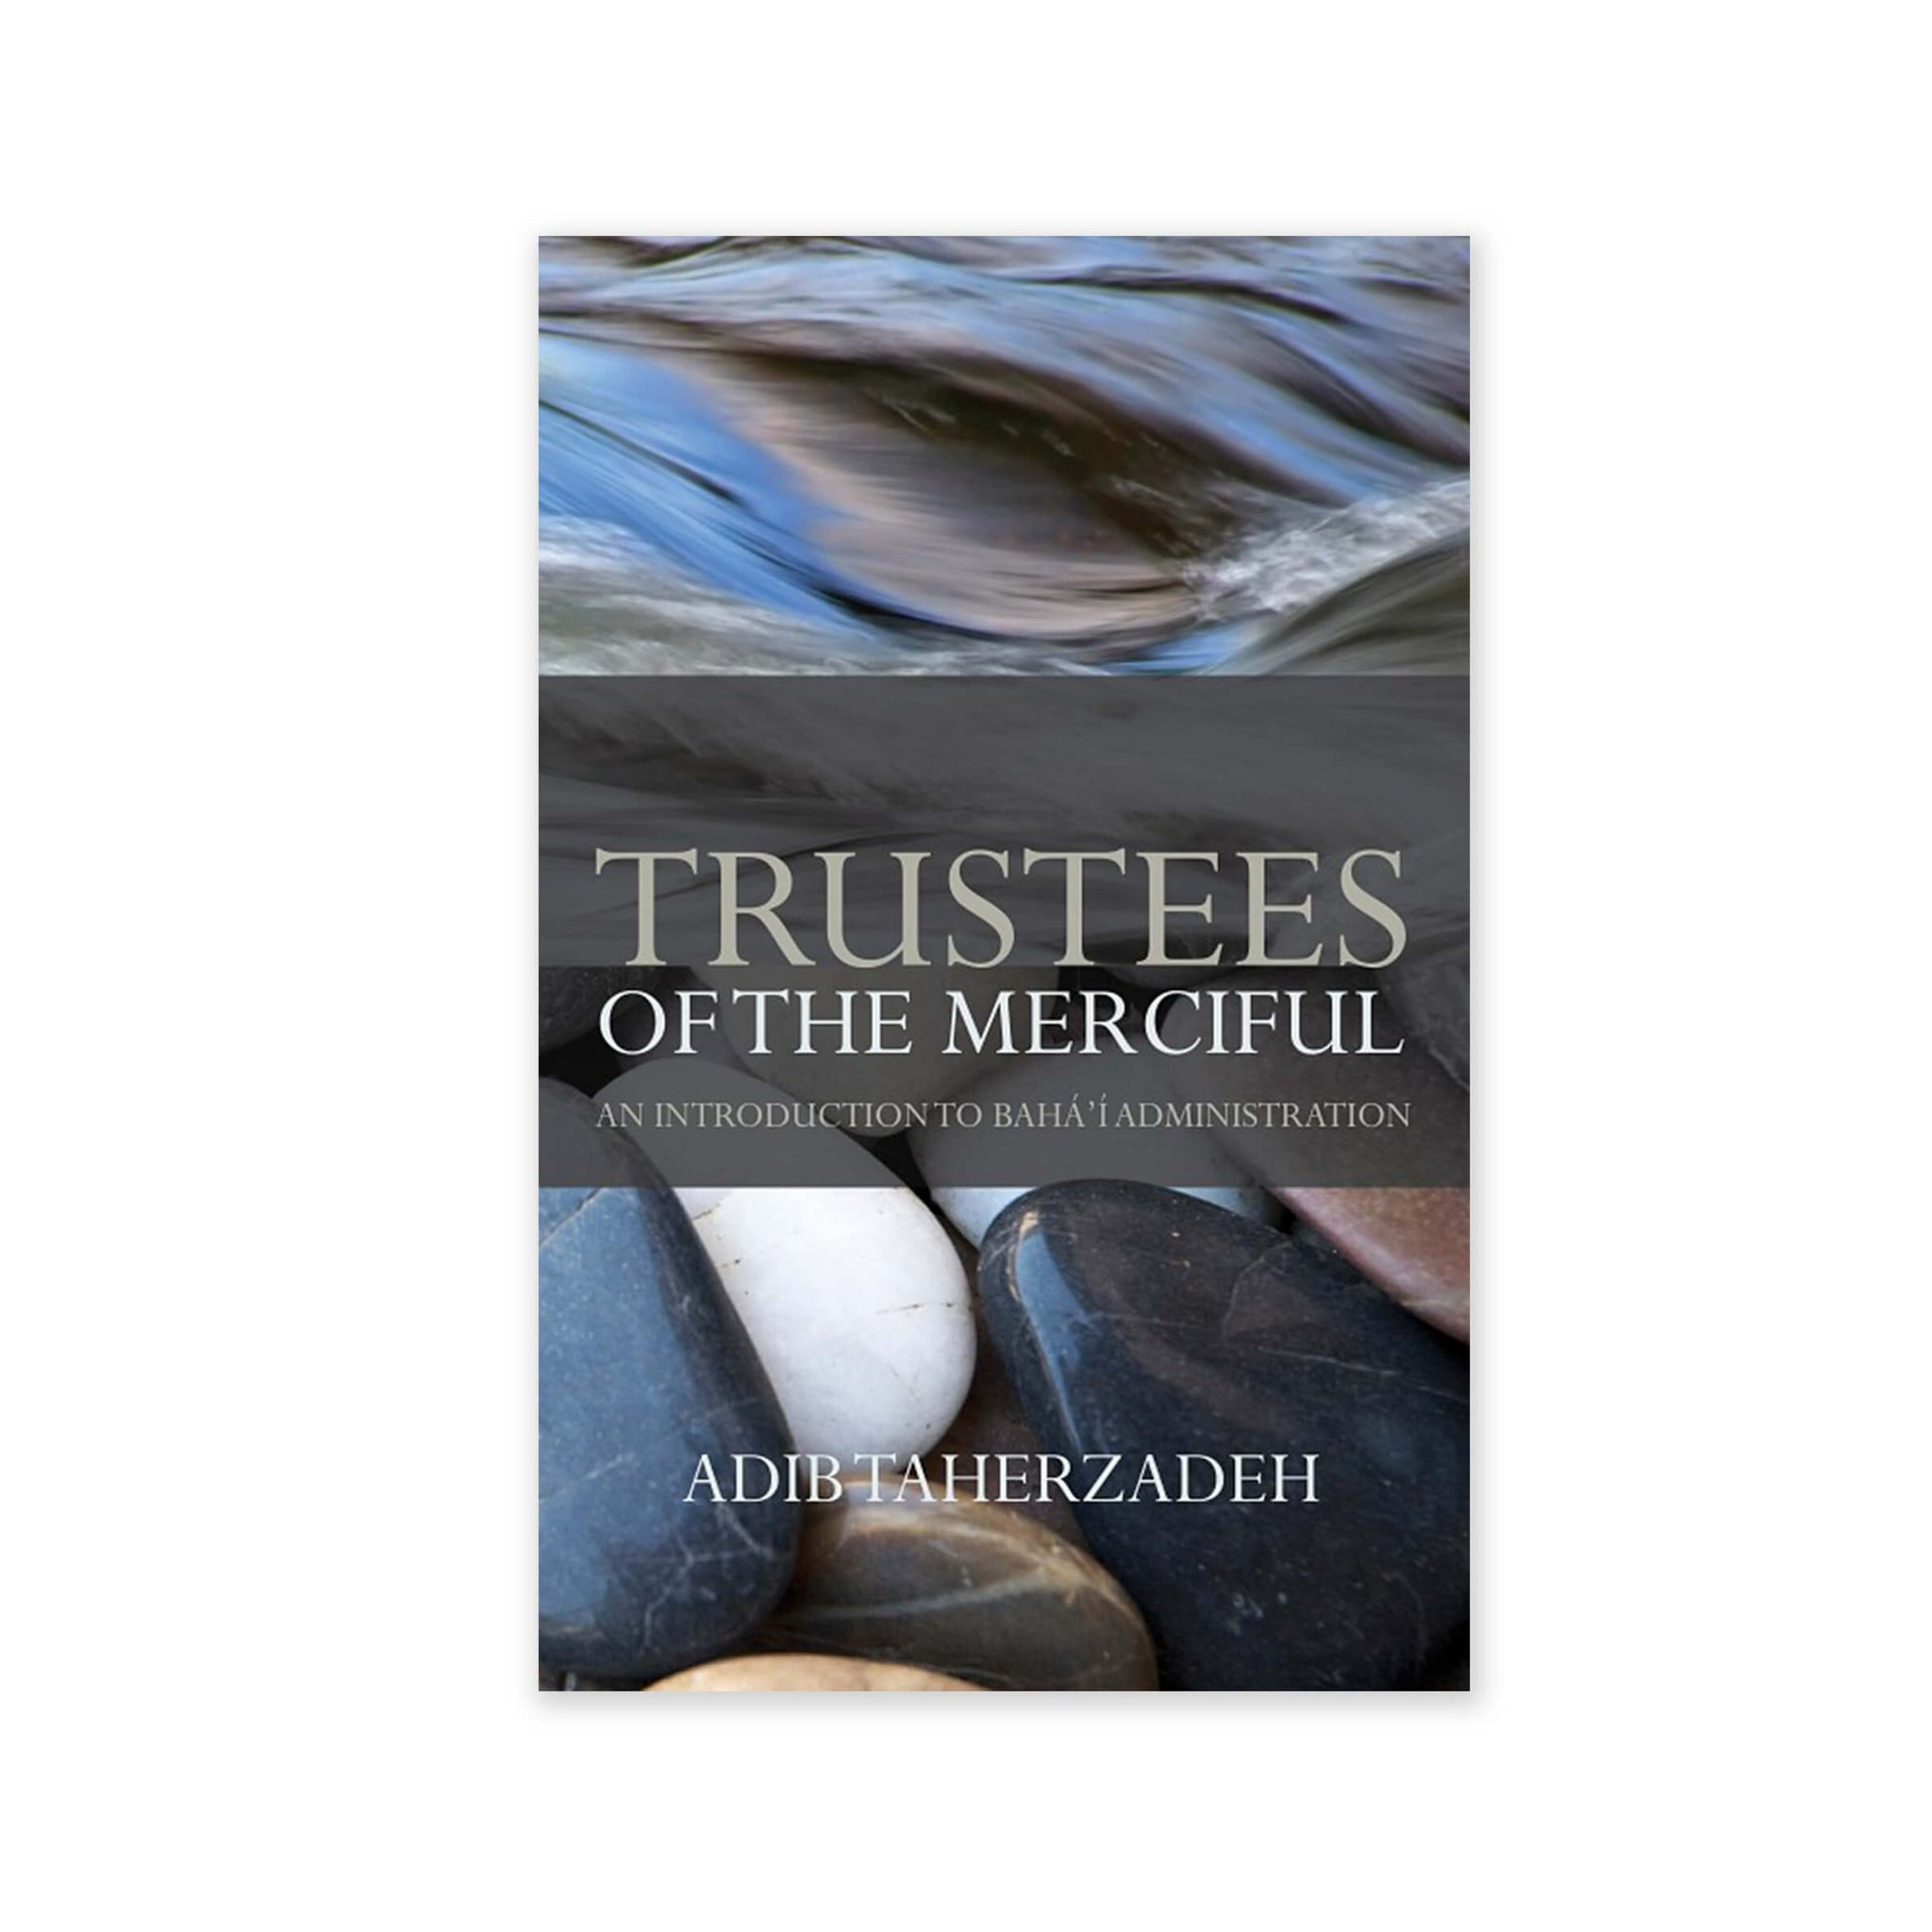 Trustees of the Merciful - An Introduction to Baha'i Administration